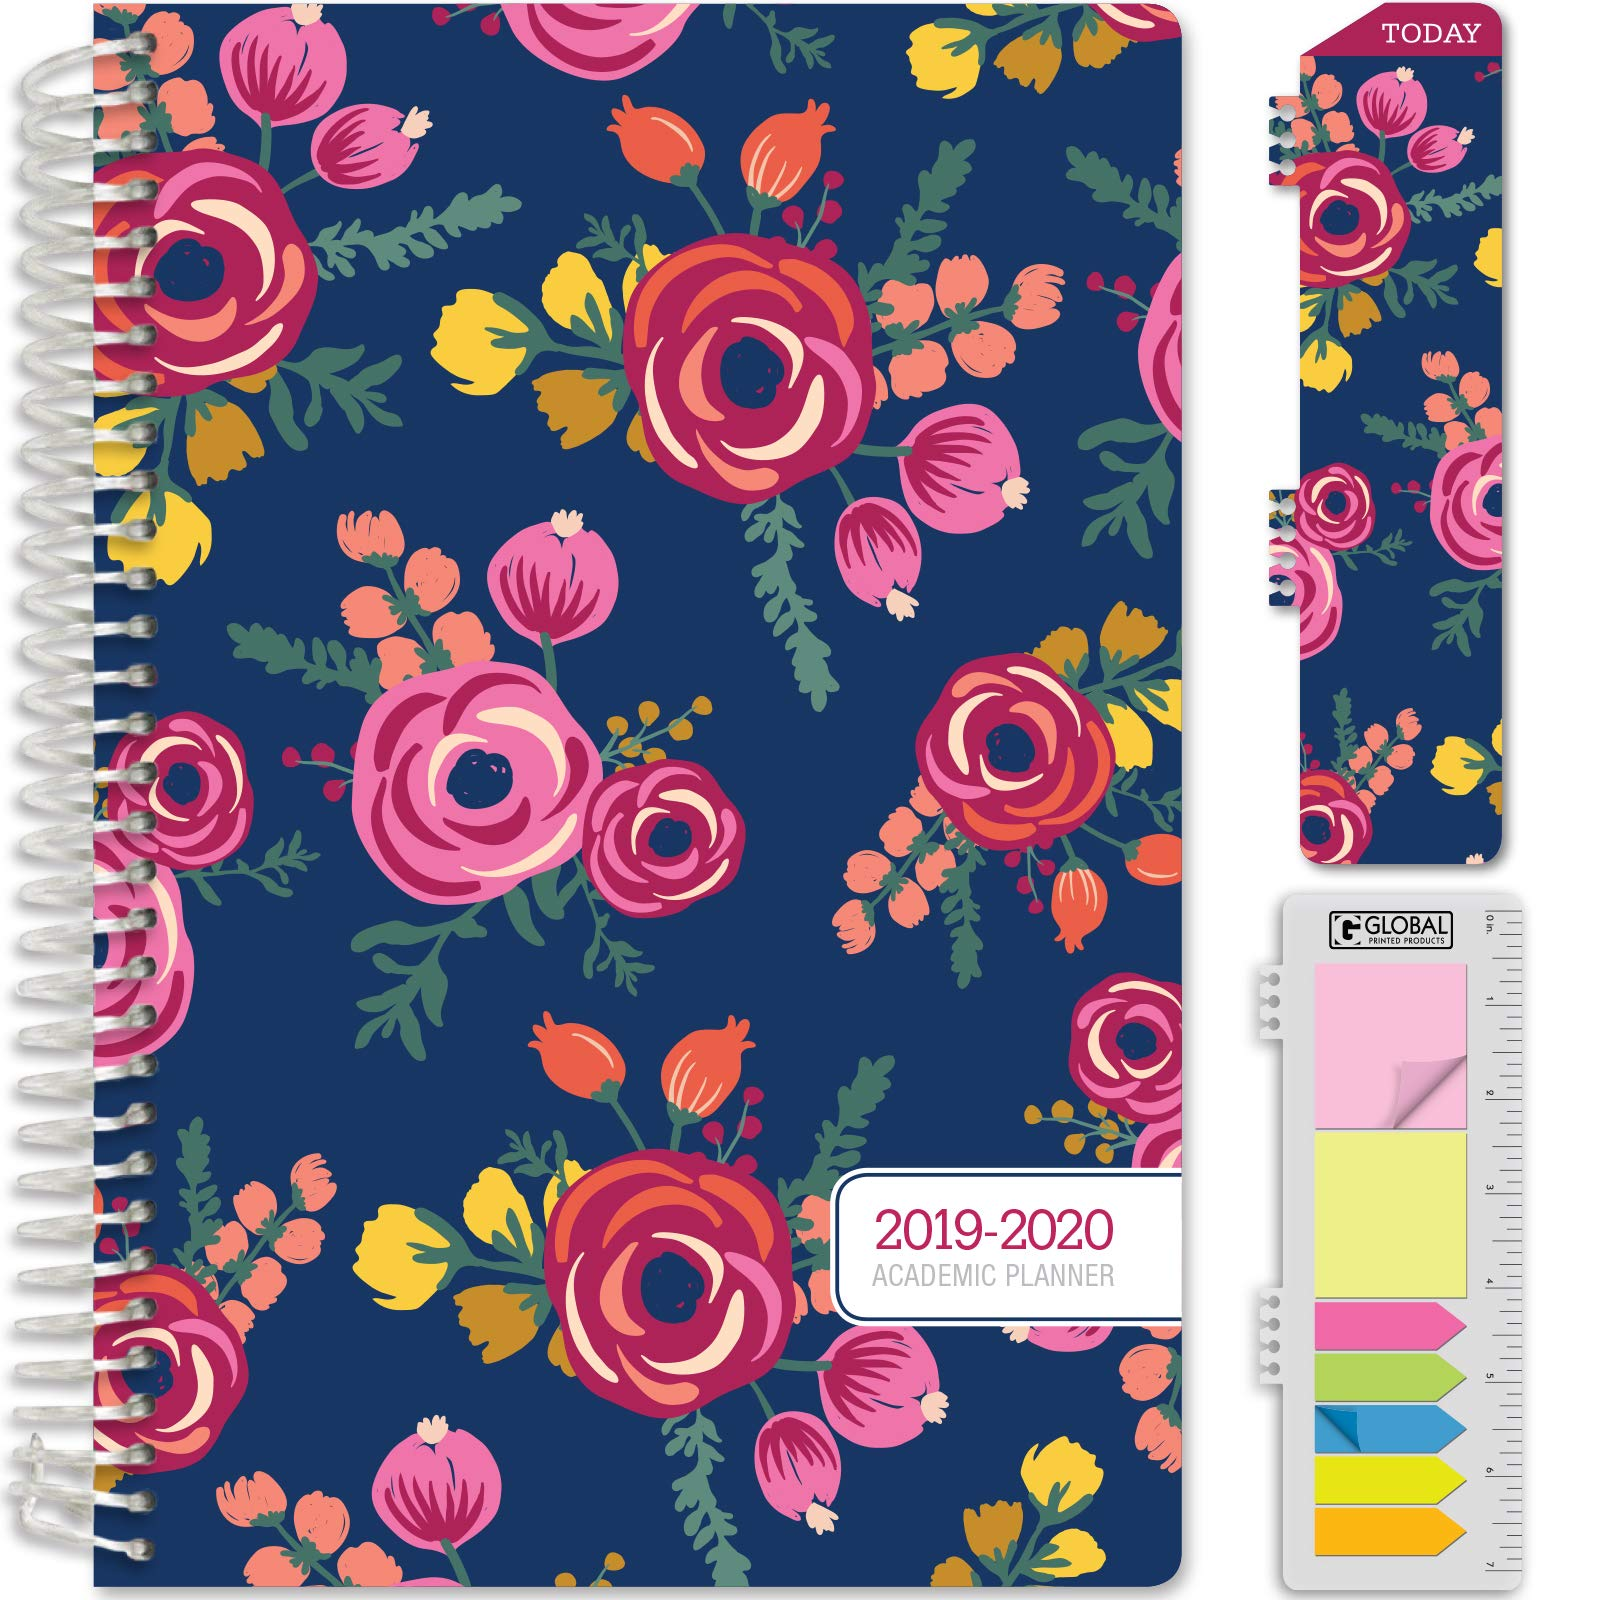 HARDCOVER Academic Year 2019-2020 Planner: (June 2019 Through July 2020) 5.5''x8'' Daily Weekly Monthly Planner Yearly Agenda. Bonus Bookmark, Pocket Folder and Sticky Note Set (Bloom)